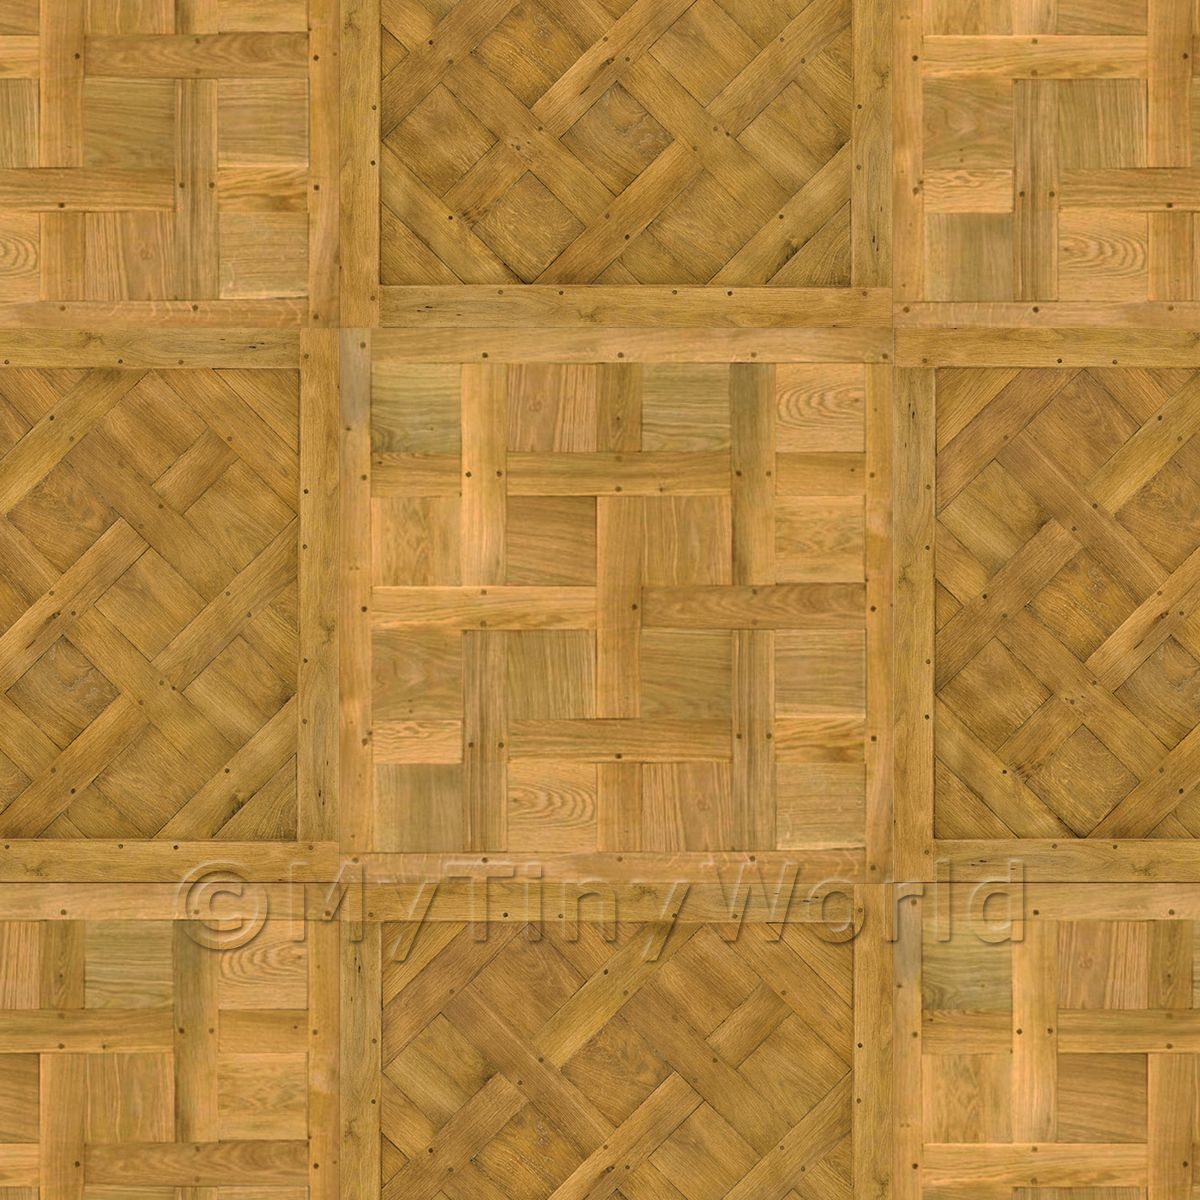 Dolls House Versailles / Chantilly Mixed Panel Parquet Flooring